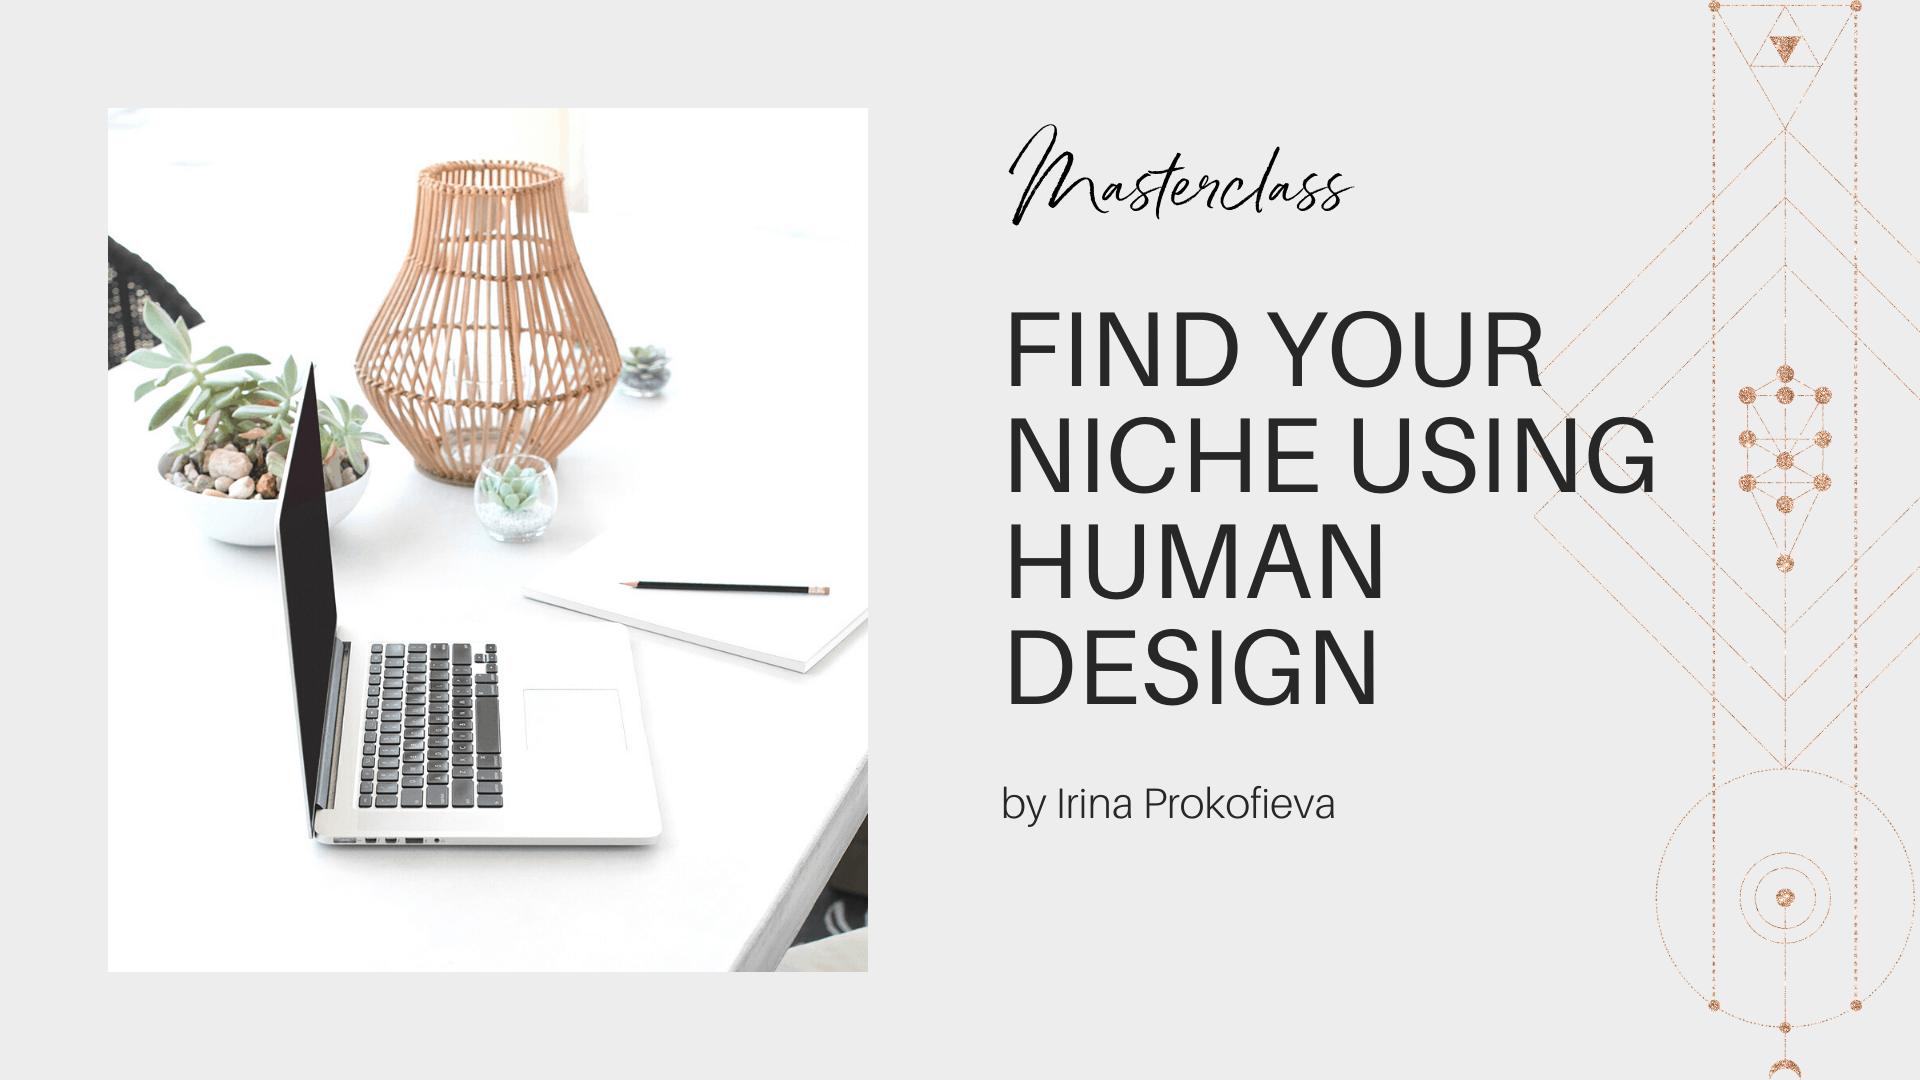 Find Your Niche Using Human Design